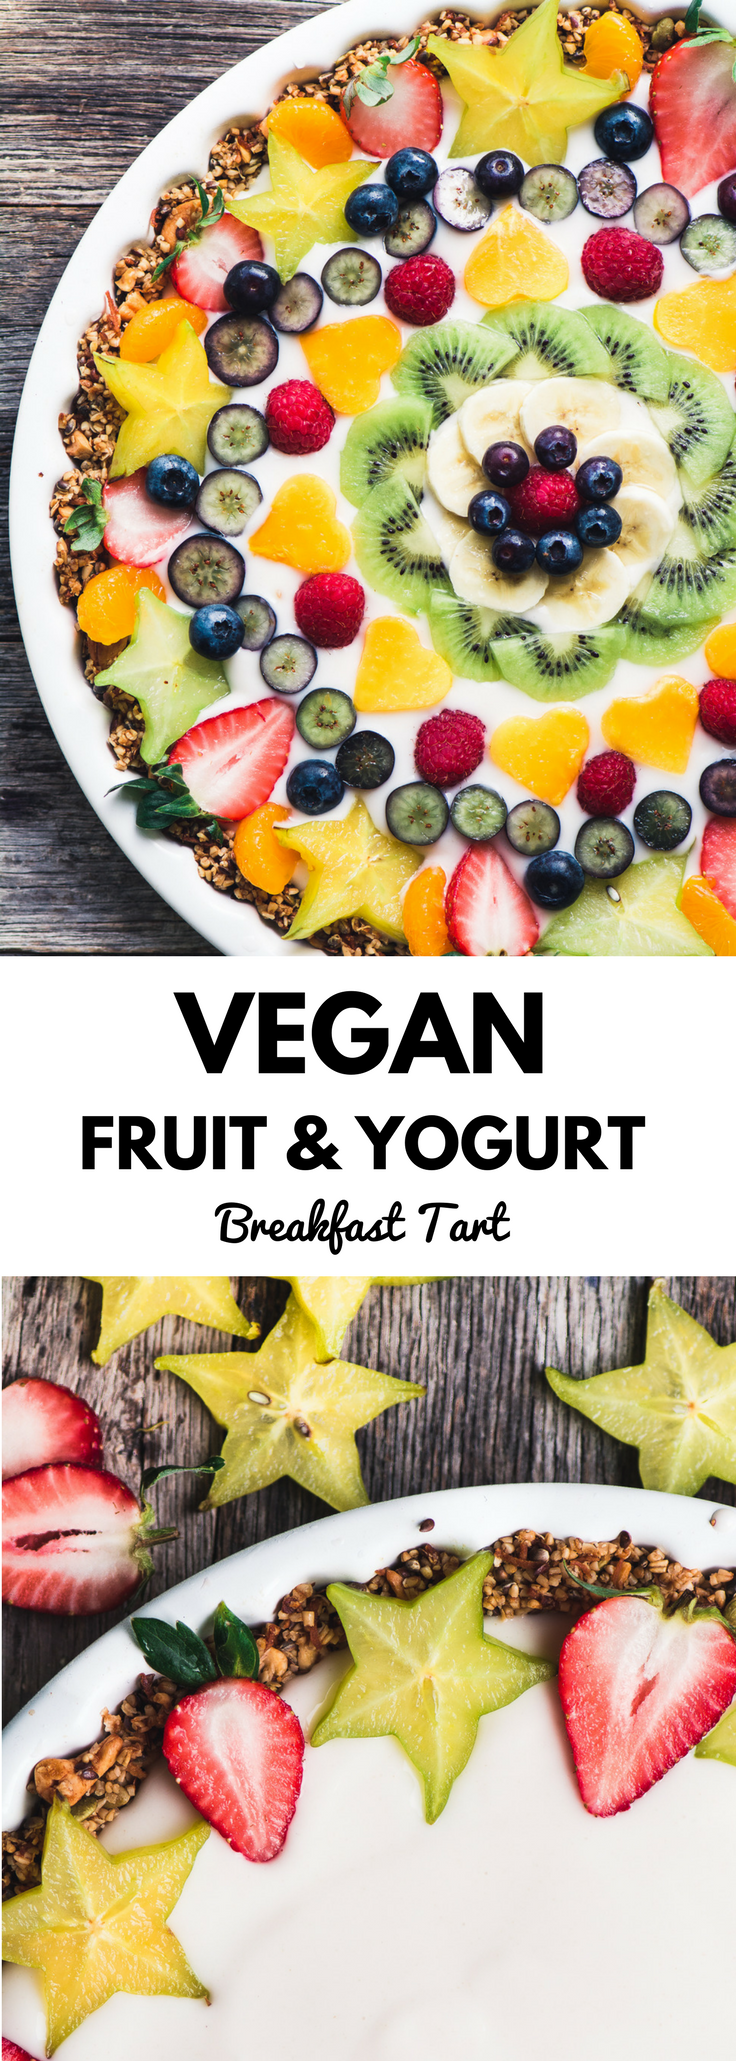 My Vegan Fruit and Yogurt Breakfast Tart makes a fun non-dairy breakfast treat for any occasion. Customize your healthy tart with whatever fruit's in season. #yogurt #breakfast #vegan #fruittart #lowfat #glutenfree #paleo #whole30 #fruit #granola #mothersday #easter